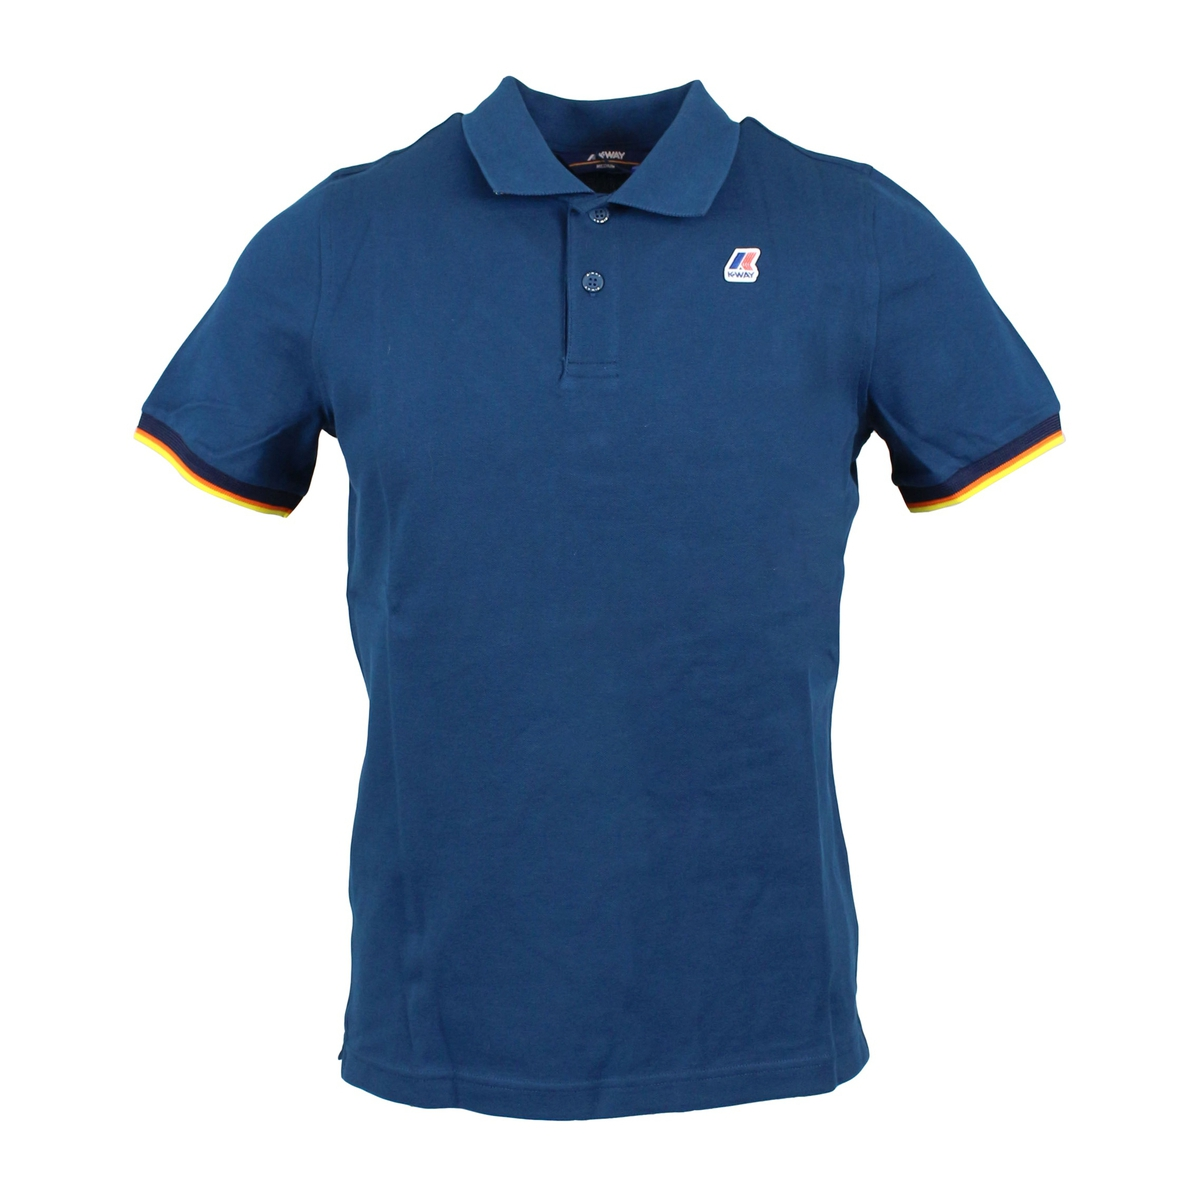 Polo Vincent Contrast Teal K-Way